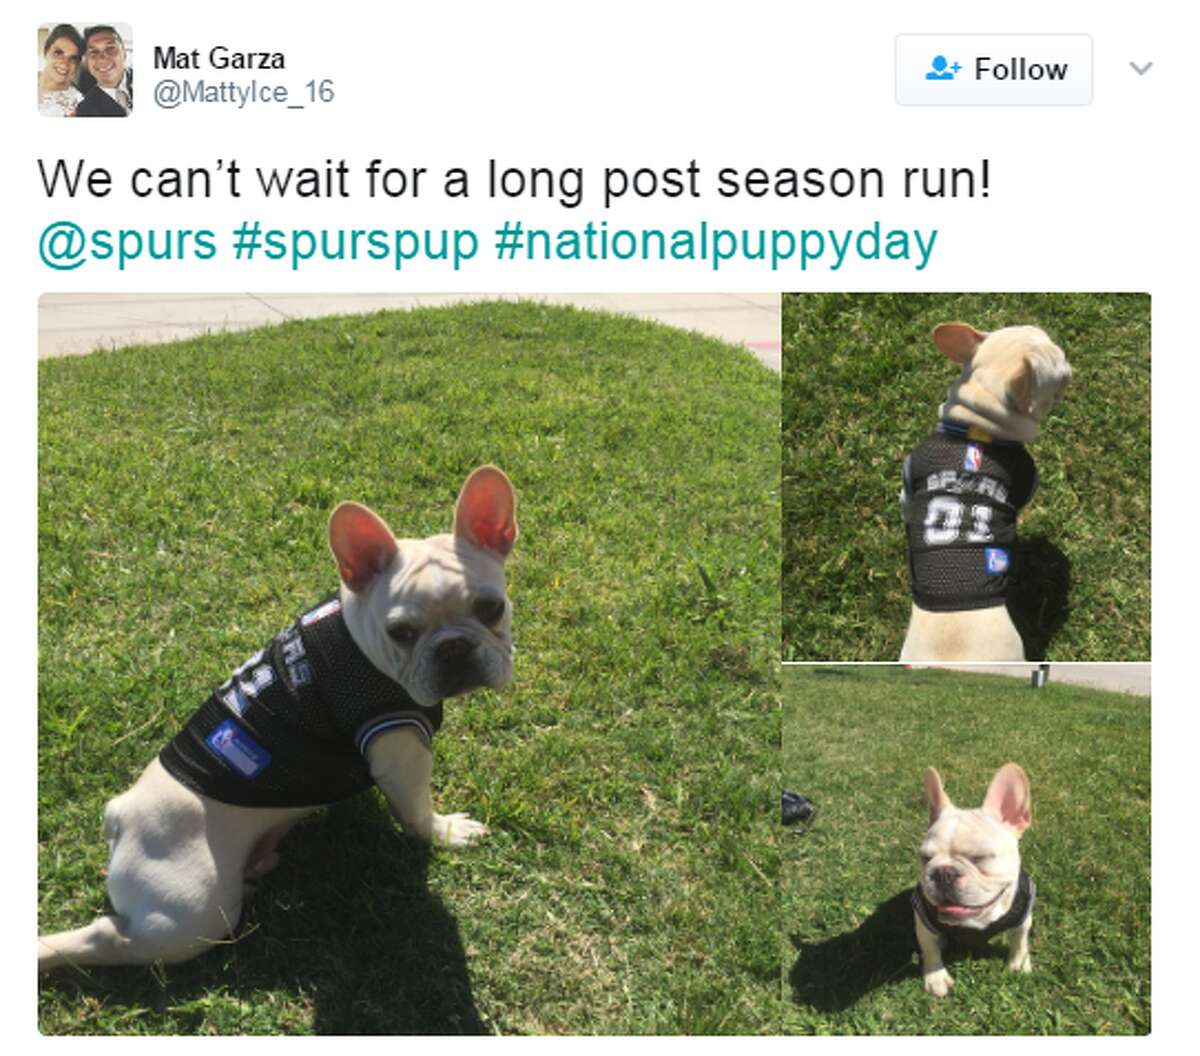 @MattyIce_16: We can't wait for a long post season run! @spurs #spurspup #nationalpuppyday